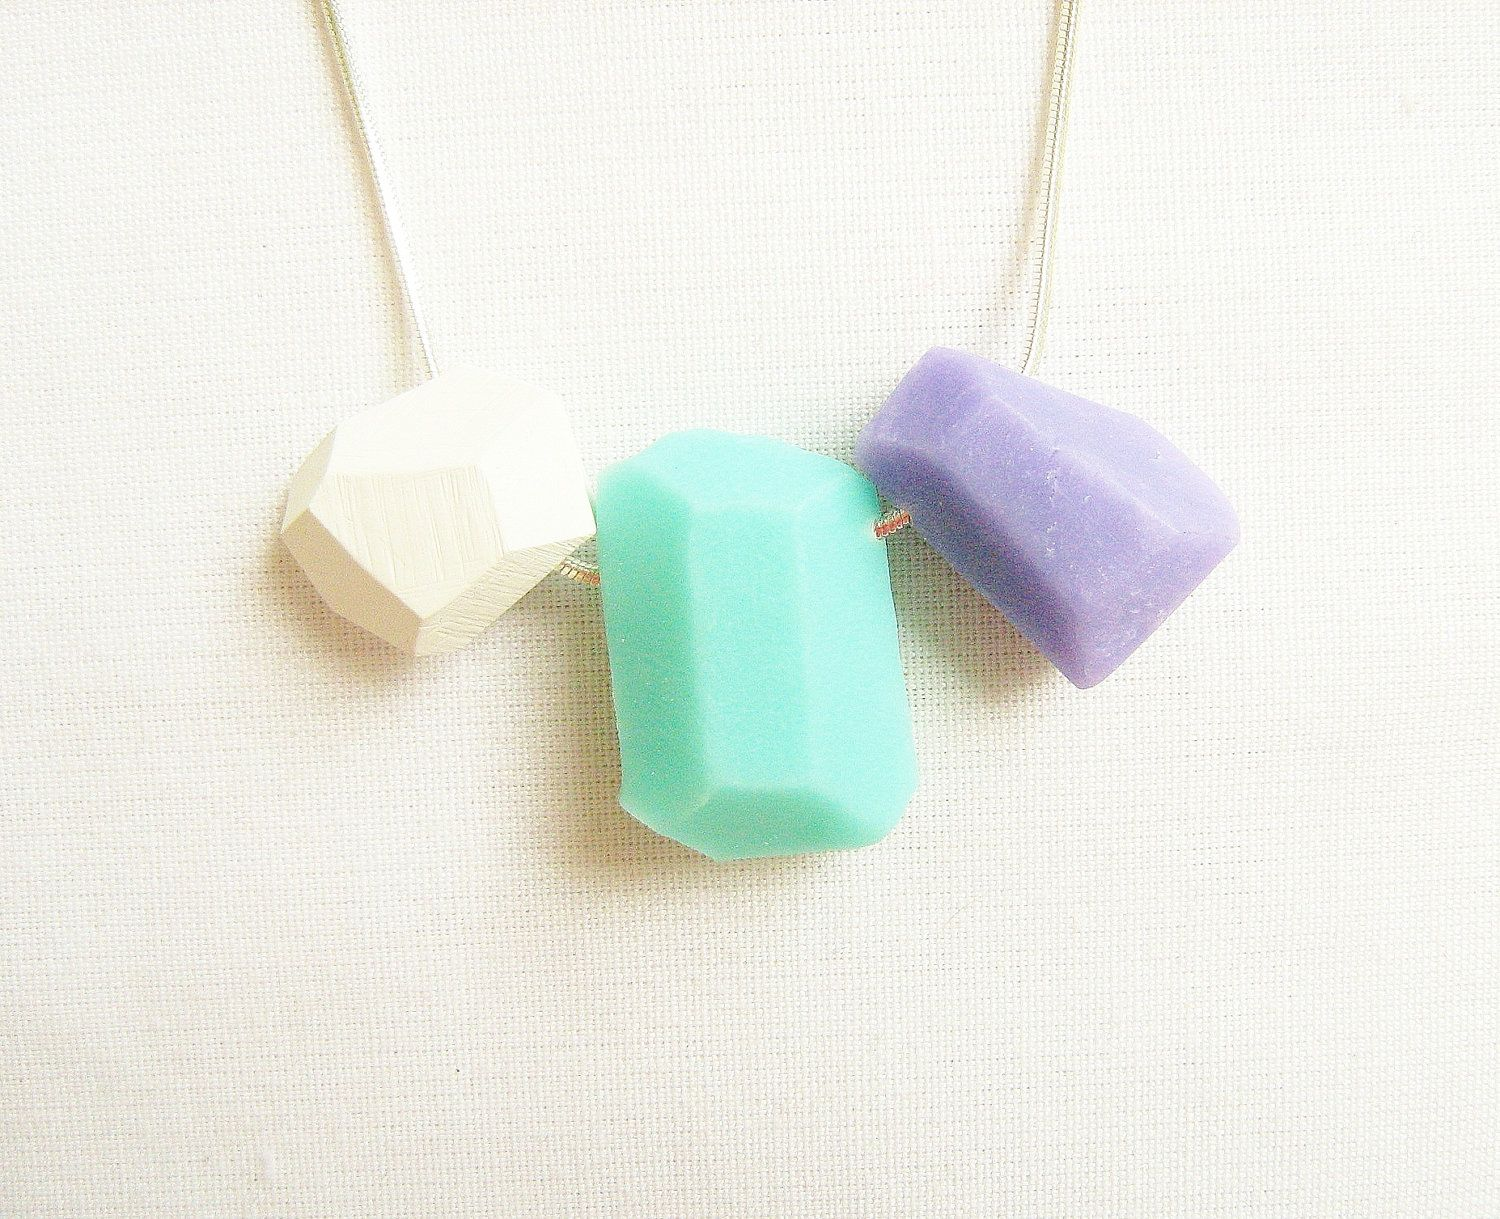 Pastel Geo Necklace in Mint, Soft Lilac and White - Rare Diamonds Collection.